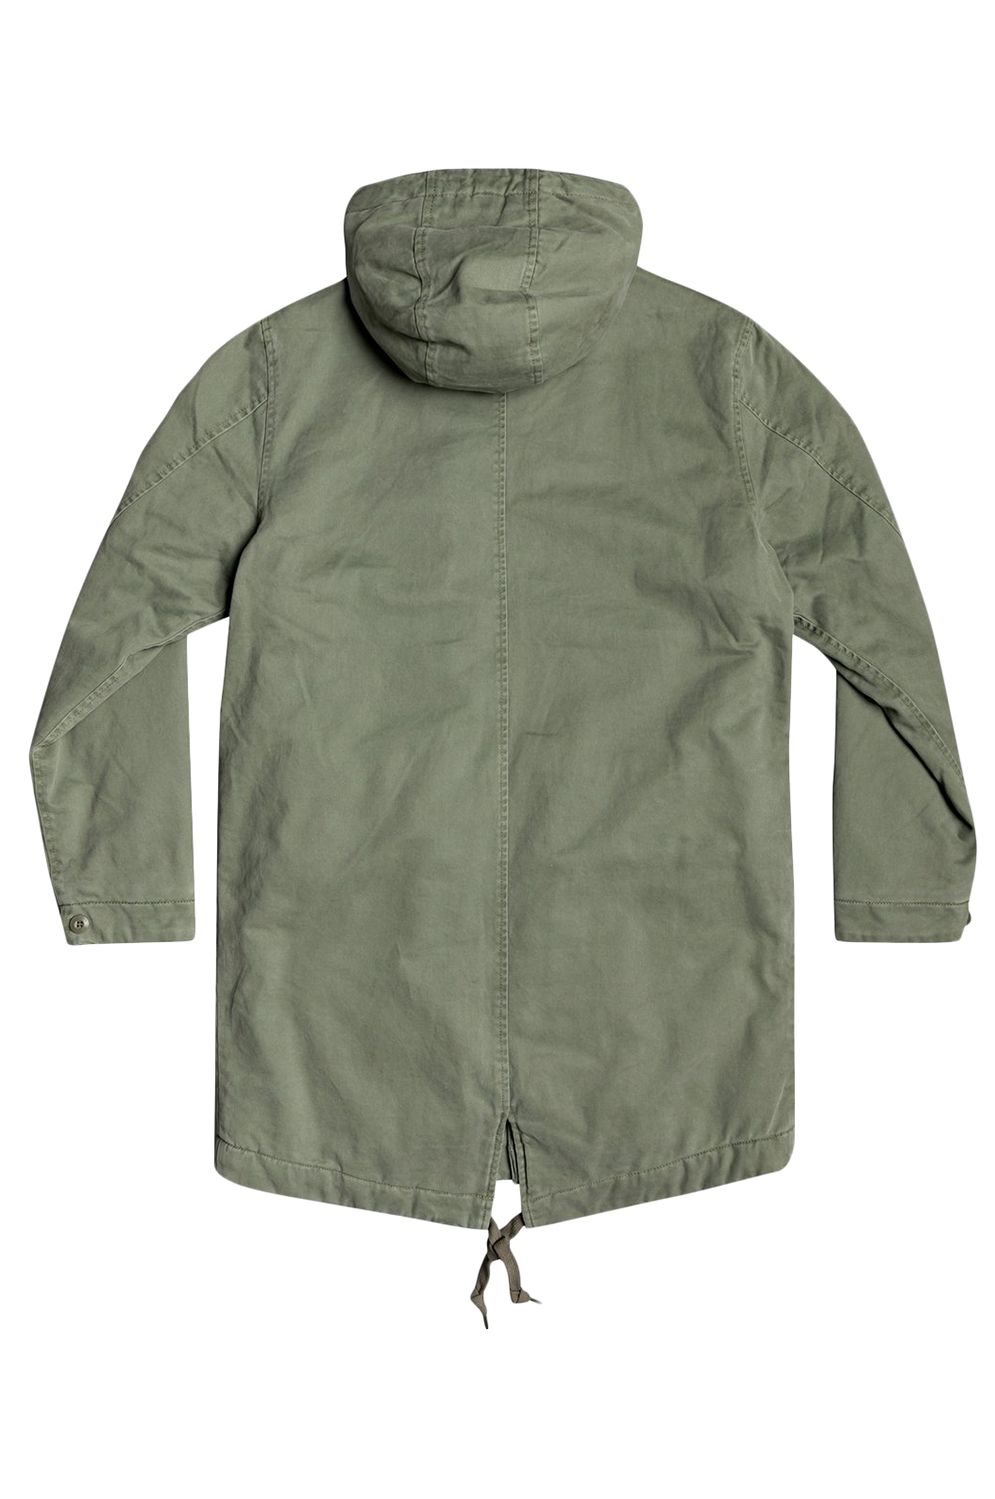 Blusão RVCA STANDARD ISSUE PARKA Sequoia Green